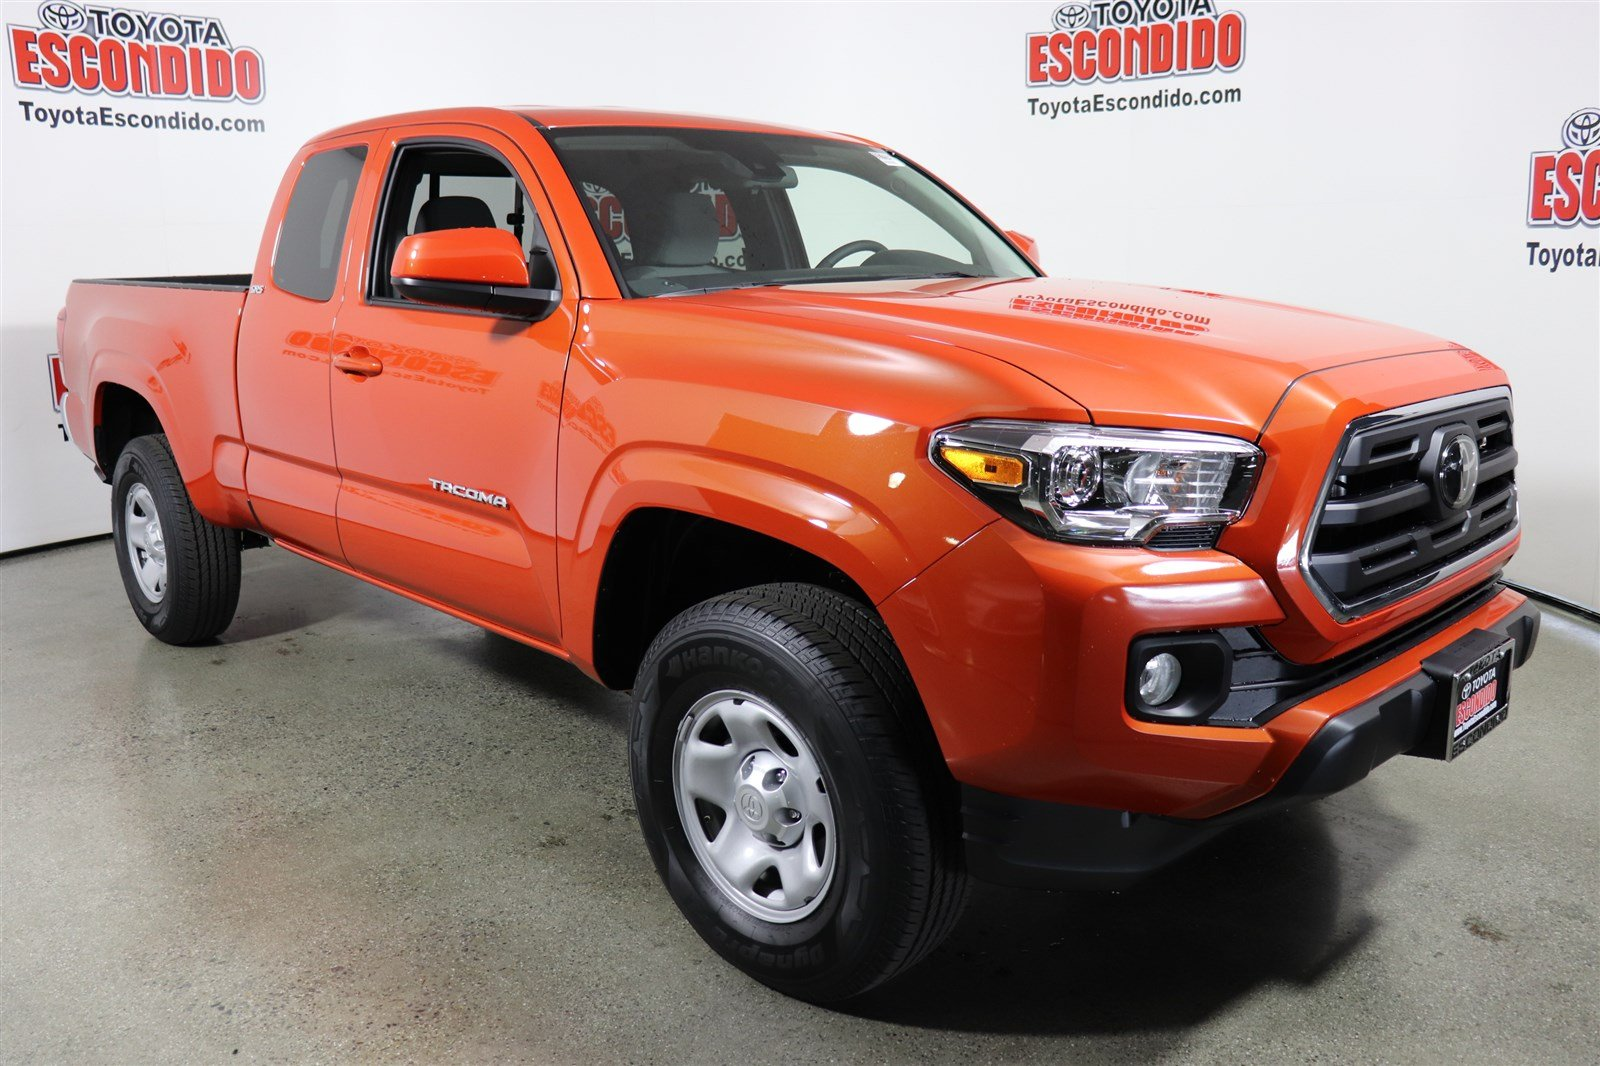 New 2018 Toyota Tacoma SR5 Double Cab Pickup in Escondido ...